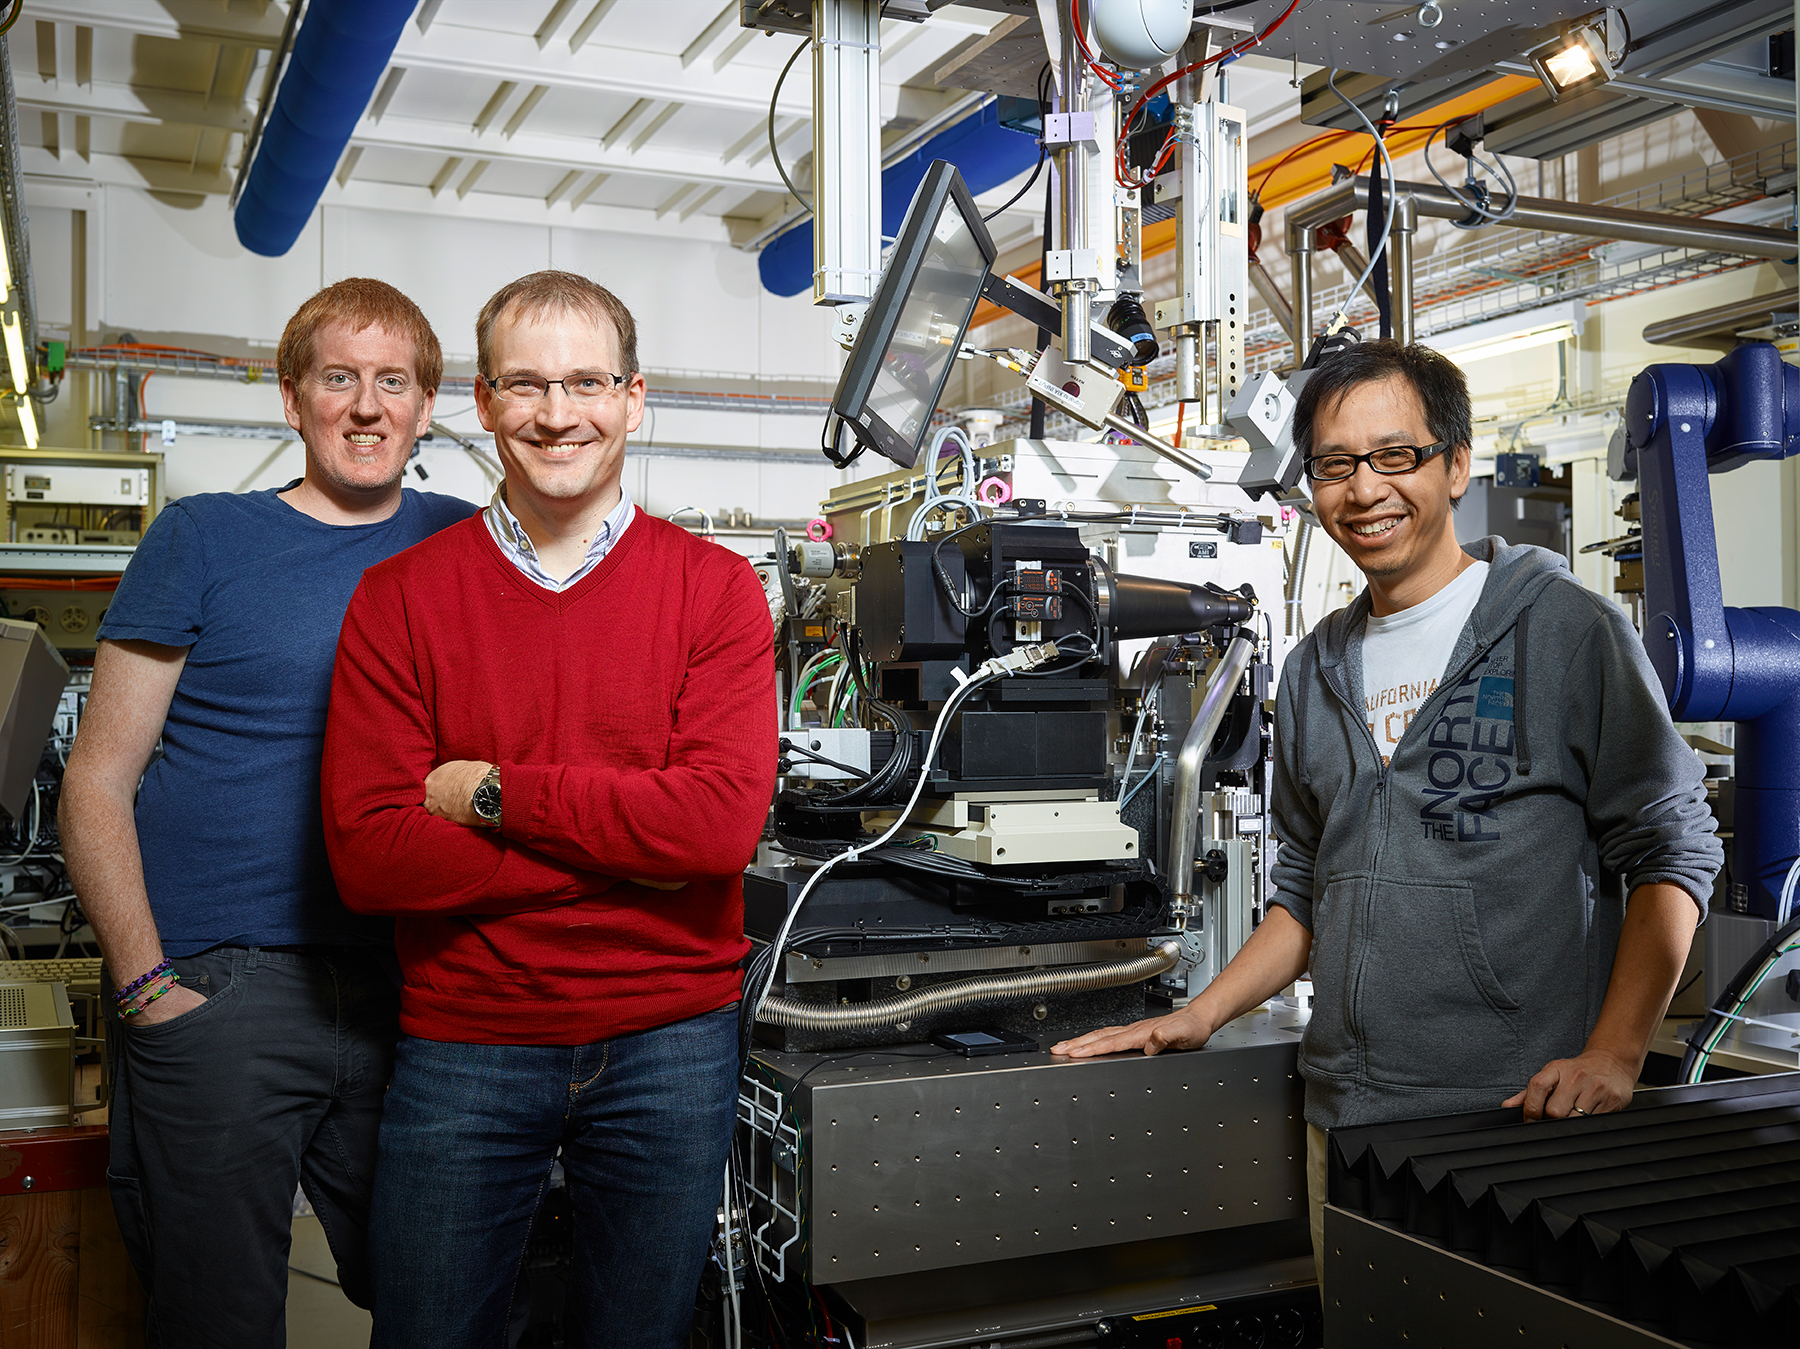 Christopher Milne, Jörg Standfuss and Meitian Wang at the SLS beamline, where experiments using serial crystallography are to be conducted in future.